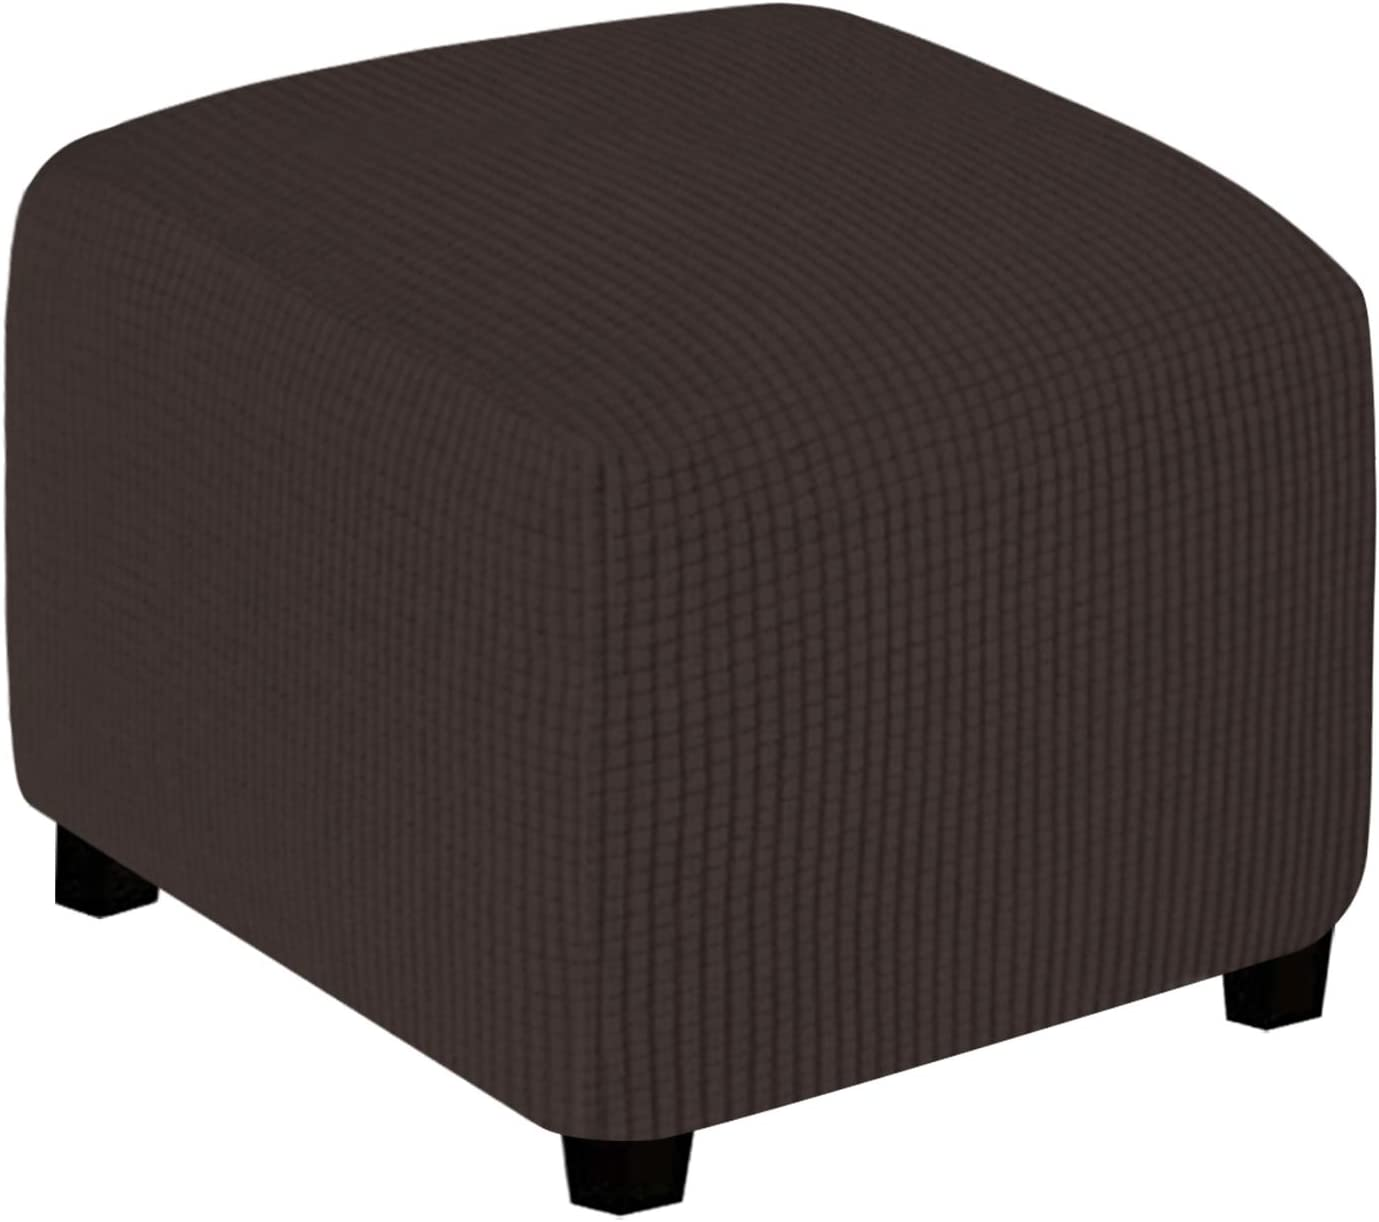 Easy-Going Stretch Ottoman Cover Folding Storage Stool Furniture Protector Soft Rectangle slipcover with Elastic Bottom (X-Small,Chocolate)